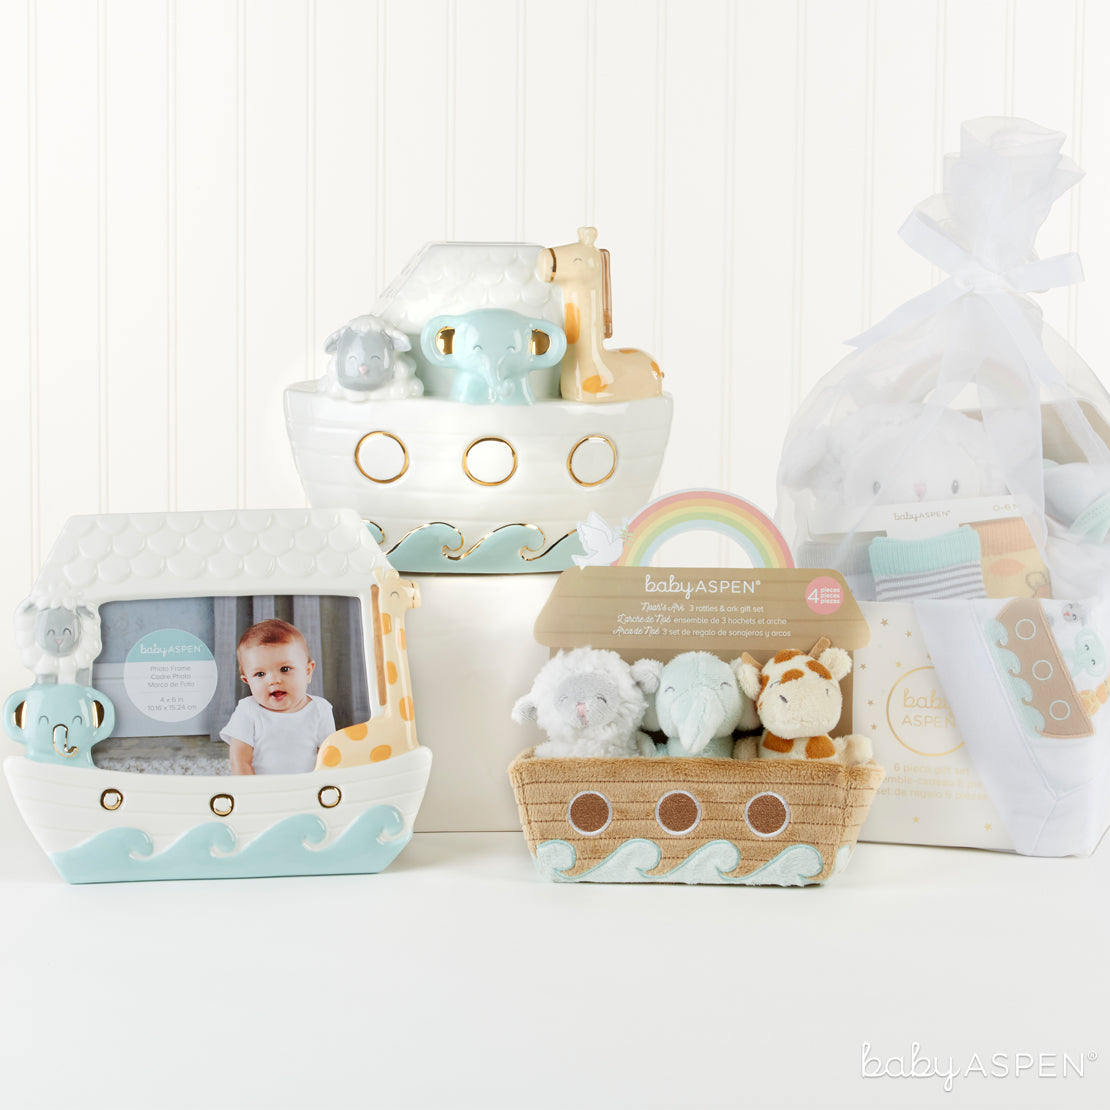 Noah's Ark Collection | Noah's Ark Themed Gifts For Your Biblical Baby | Baby Aspen